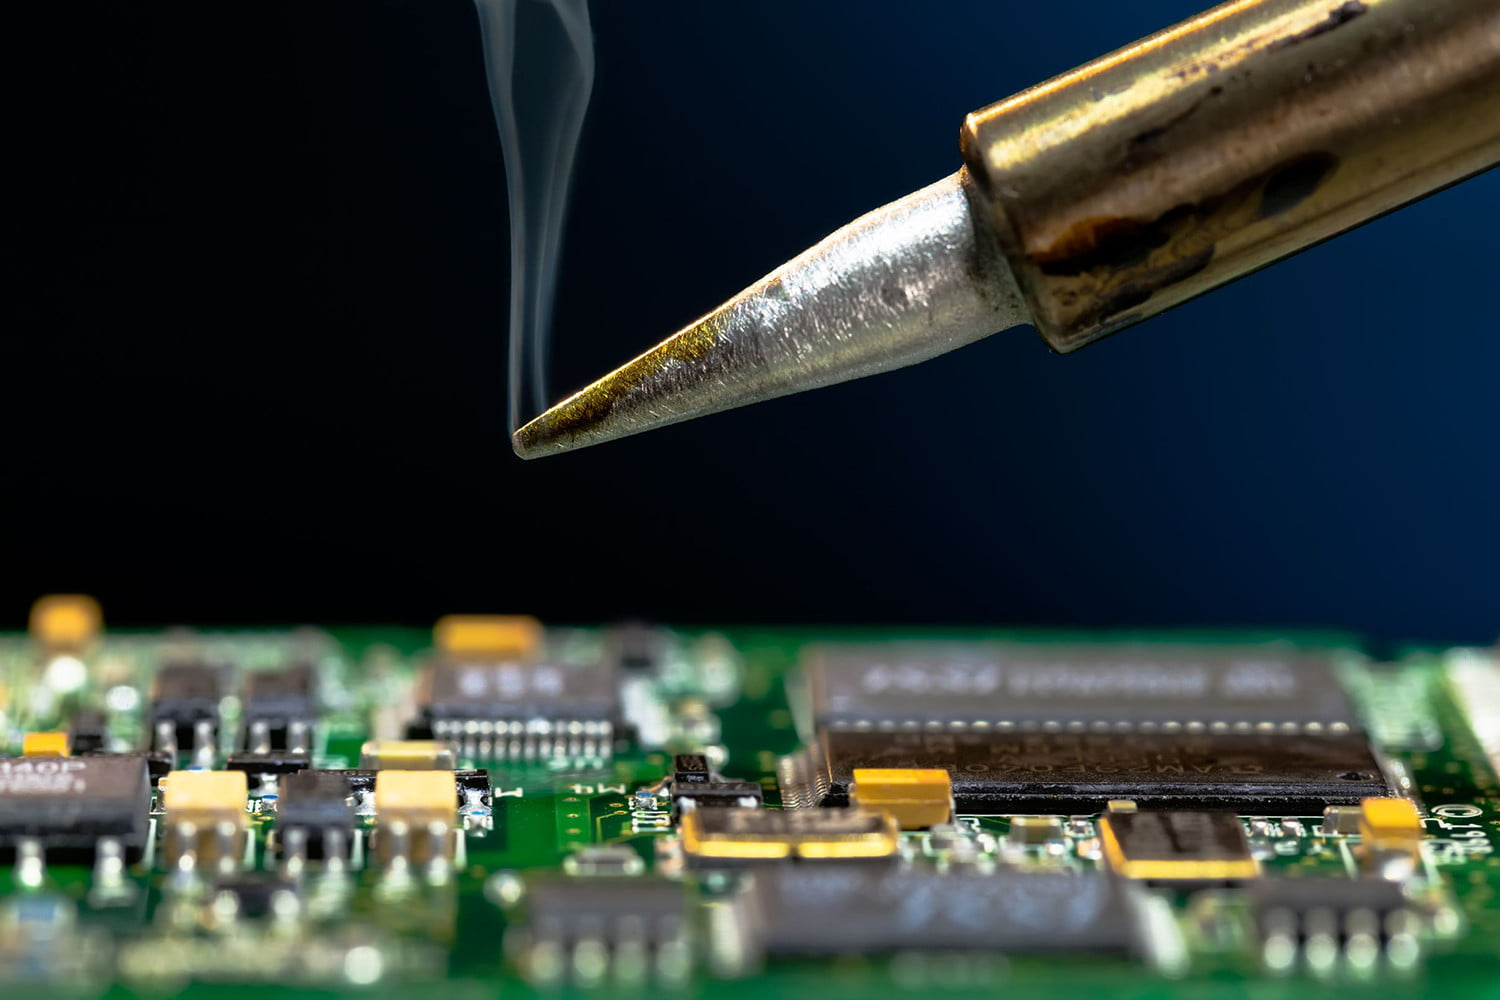 How To Solder A Complete Noobs Guide Melting Metal Digital Trends Soldering Circuit Board